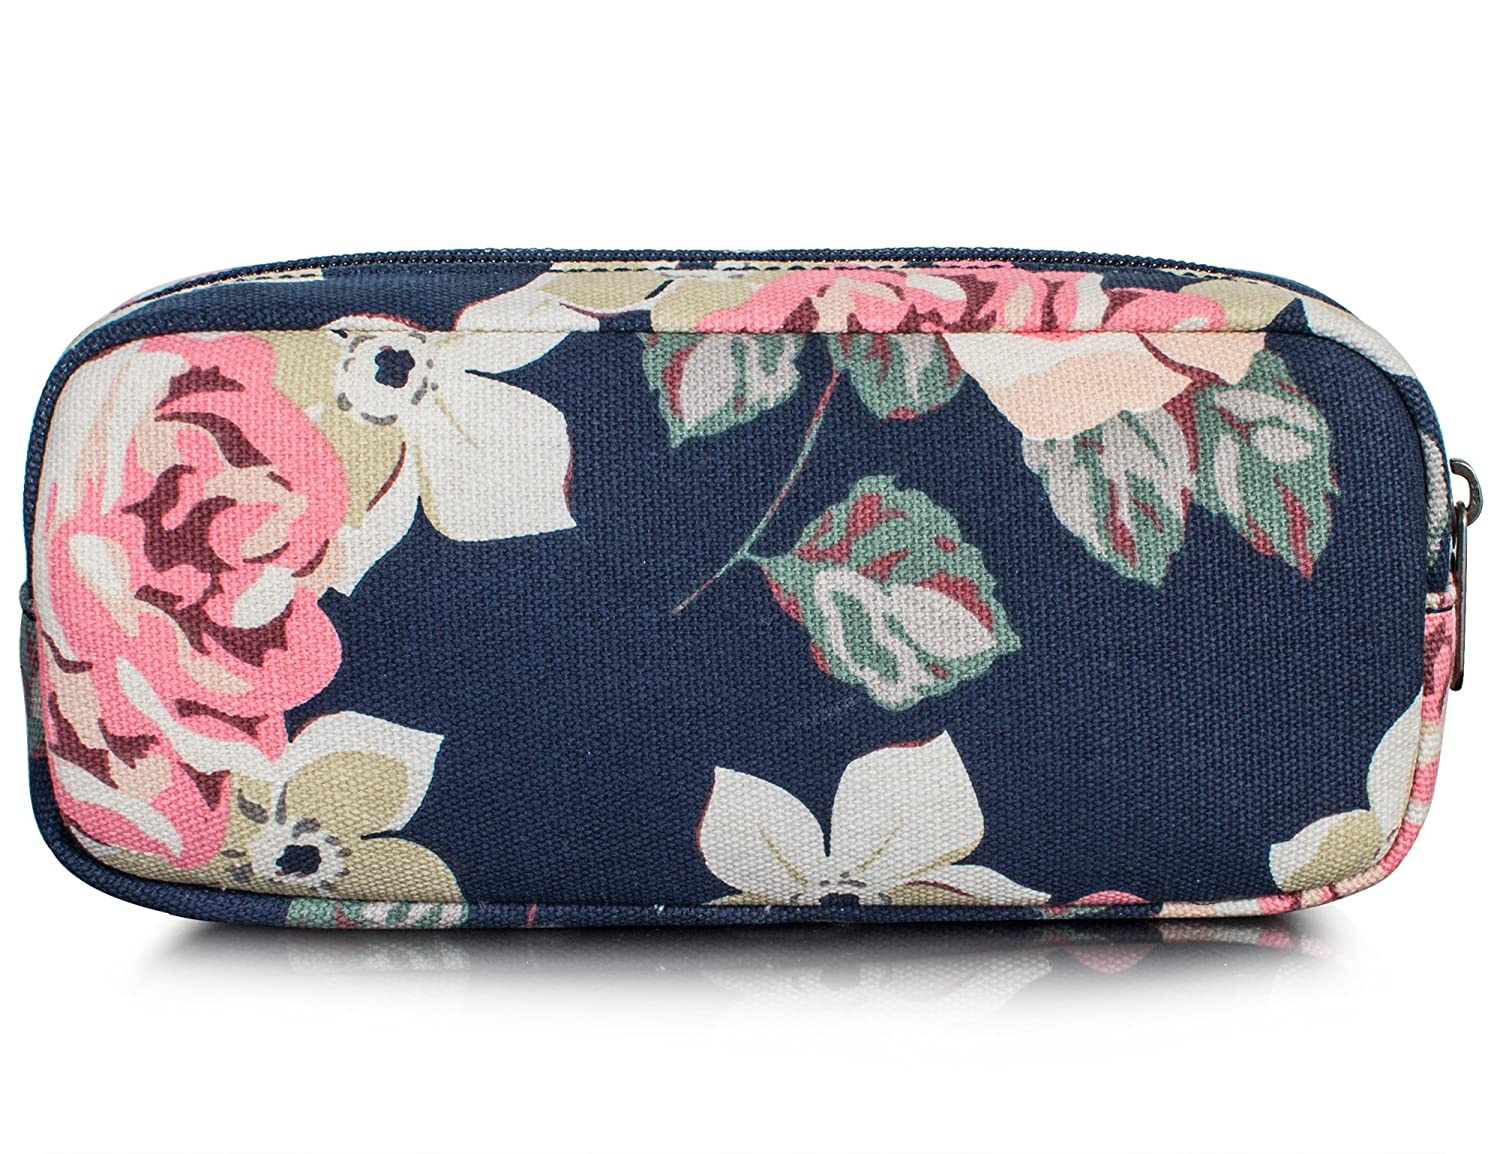 Leaper Floral Pen Pencil Case Coin Purse Pouch Cosmetic Makeup Bag Dark Blue